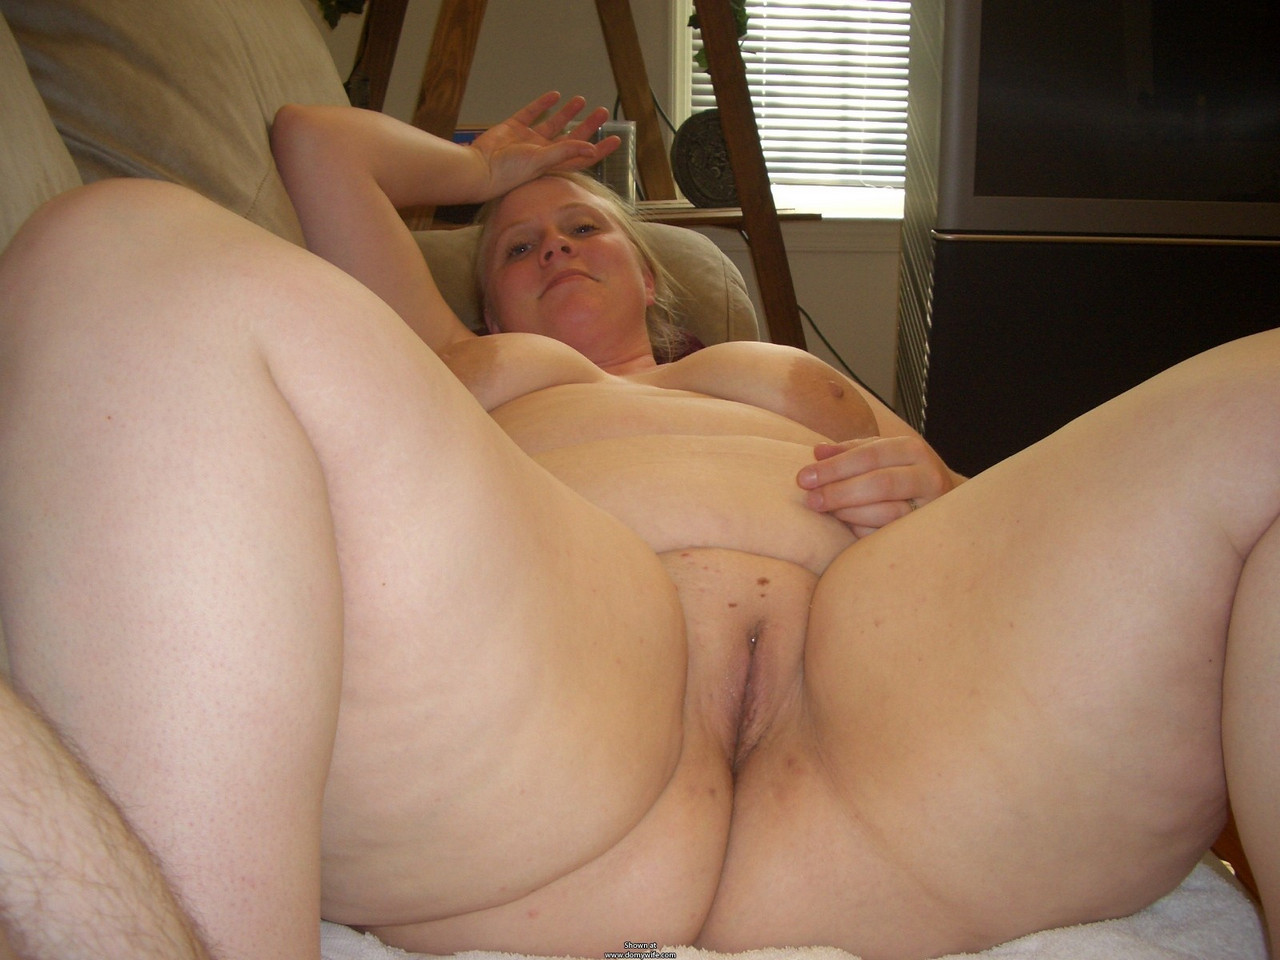 Mature wife sharing videos